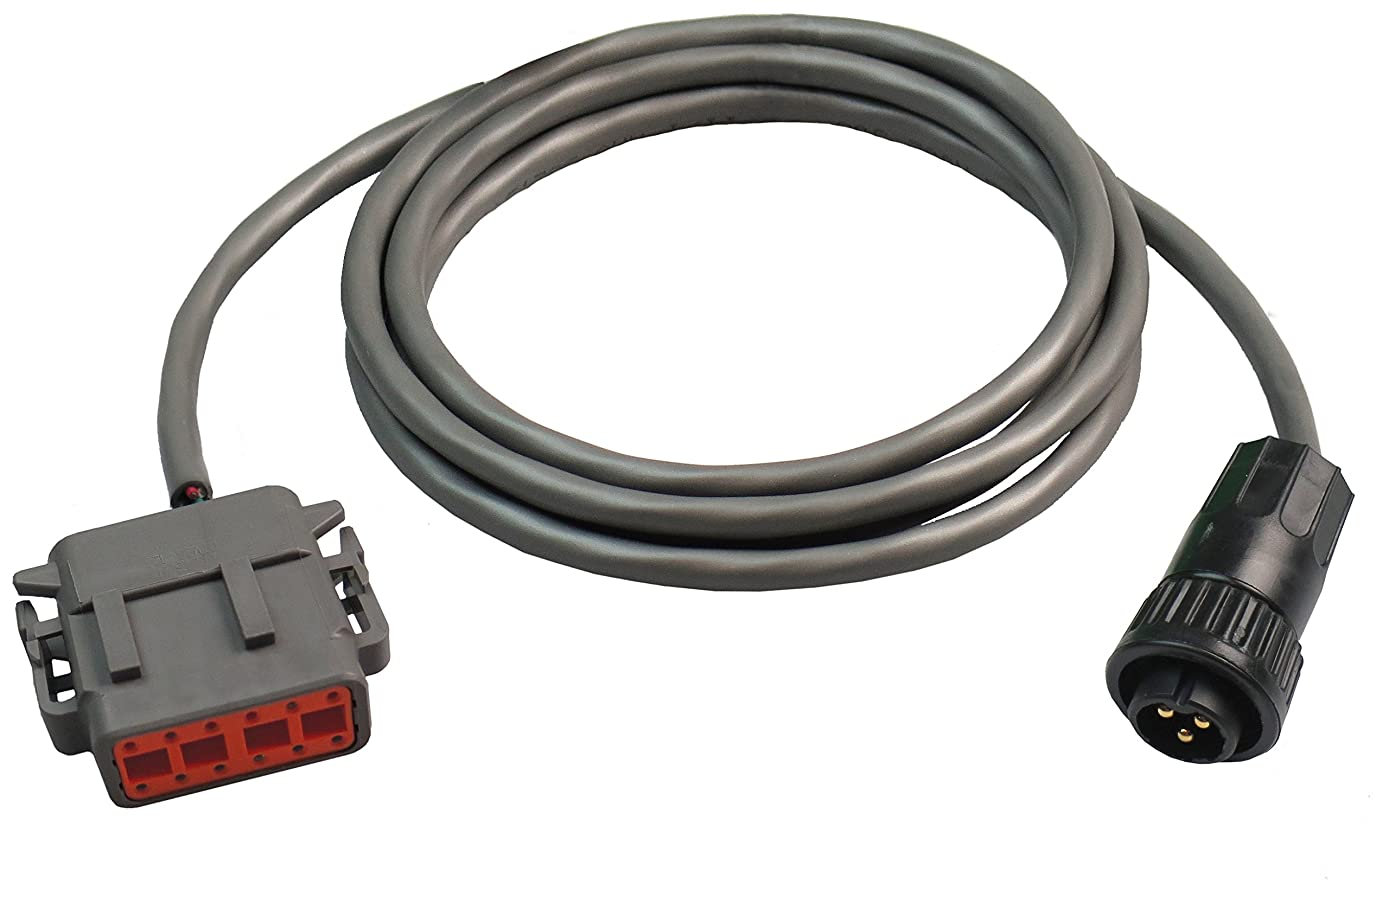 Sensor-1 ADTM06-R Adapter Cable that Connects Trimble CFX/FMX Guidance and Mapping Systems to Raven Monitor